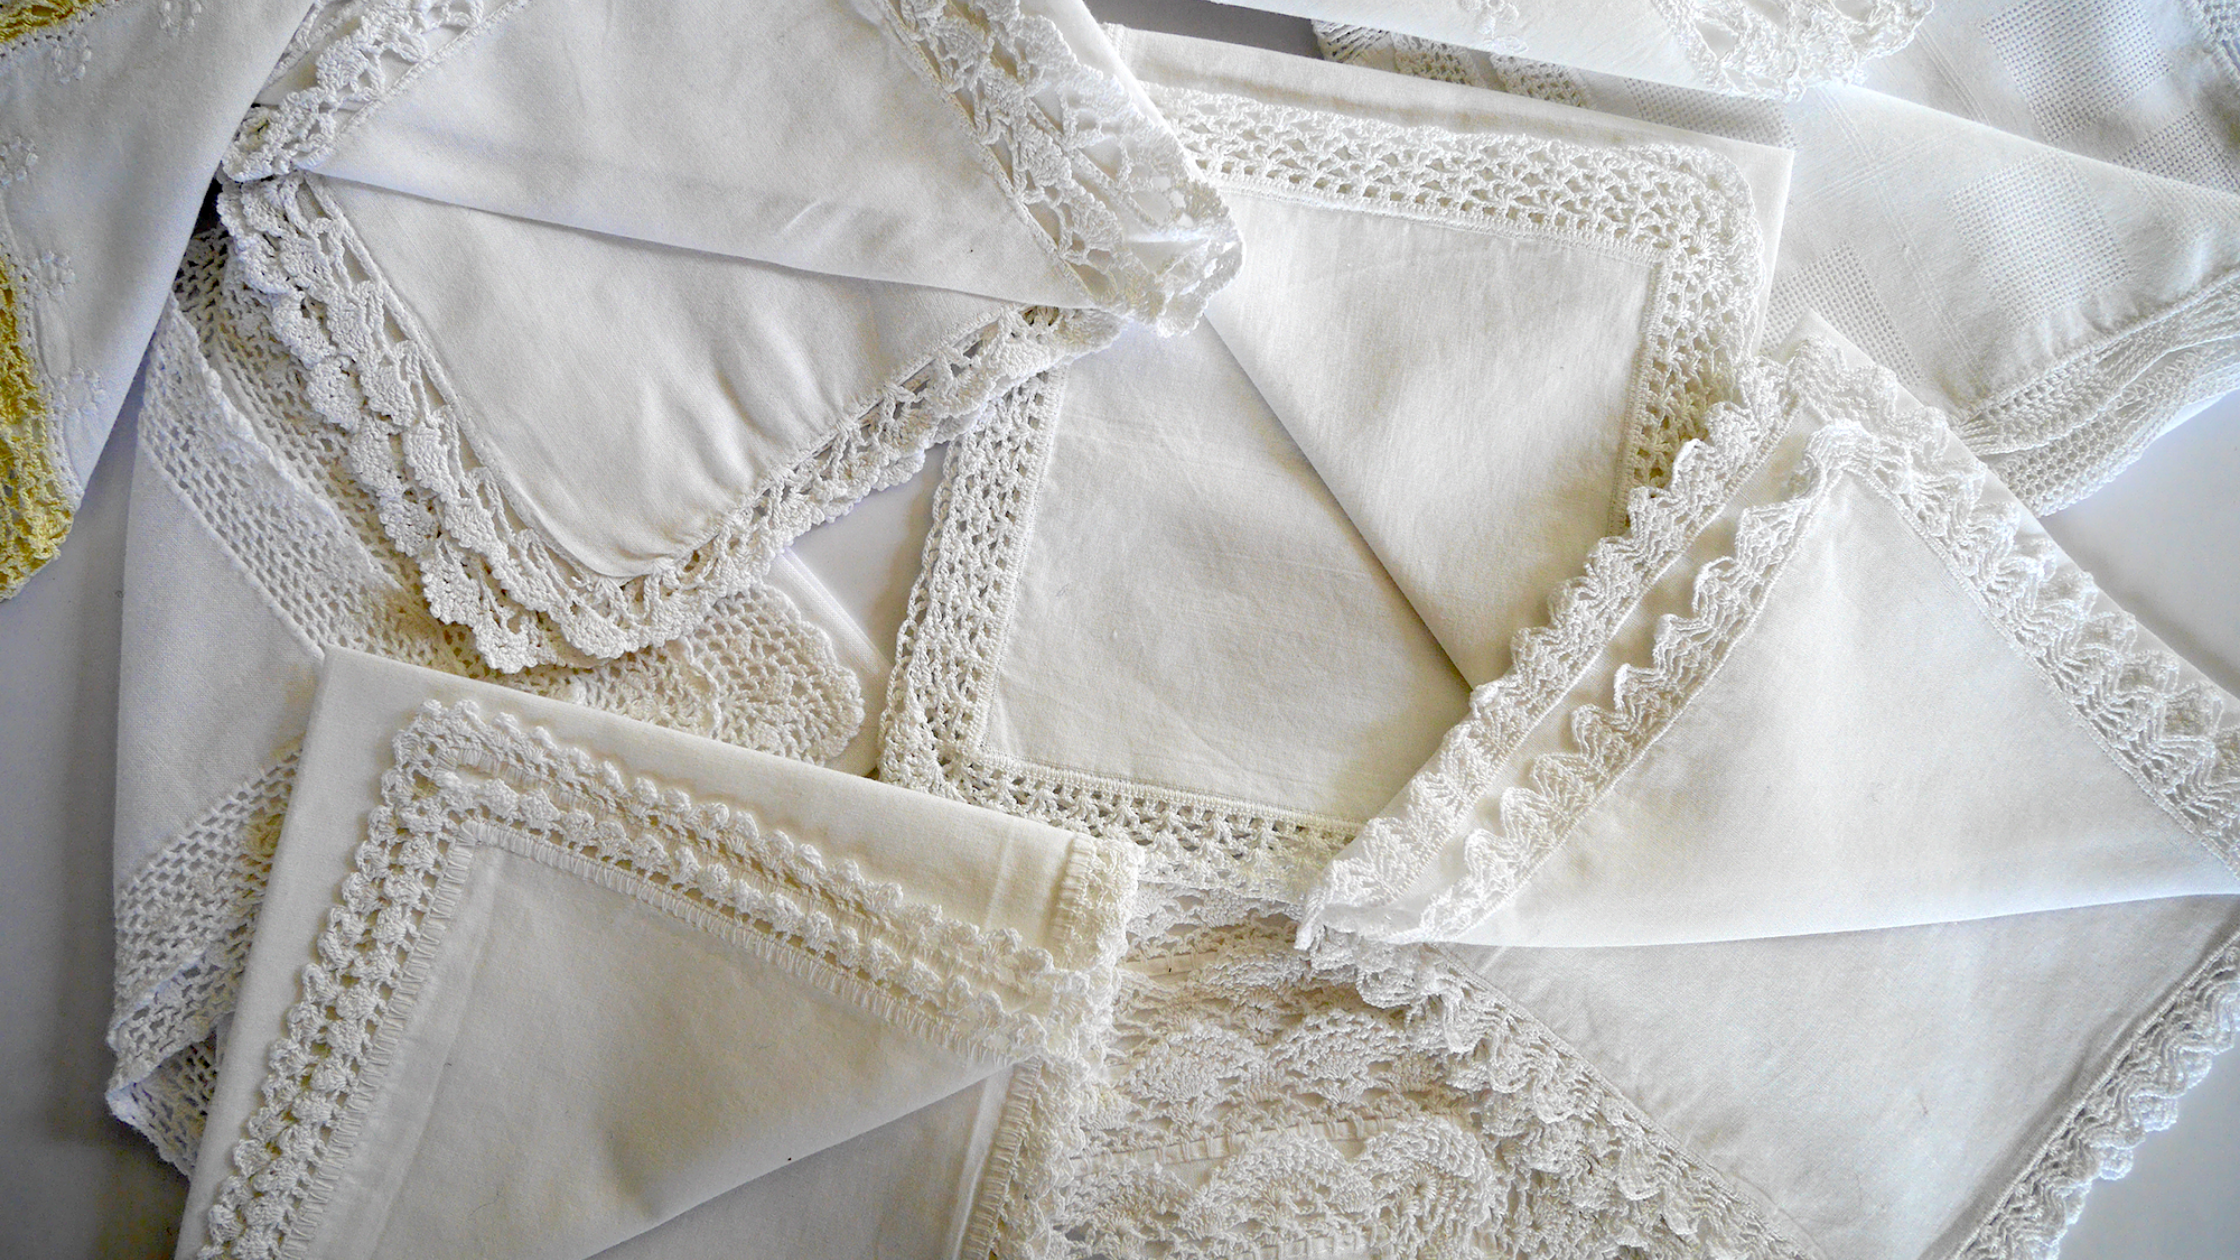 Talea's hand crocheted linen borders, aren't they gorgeous?